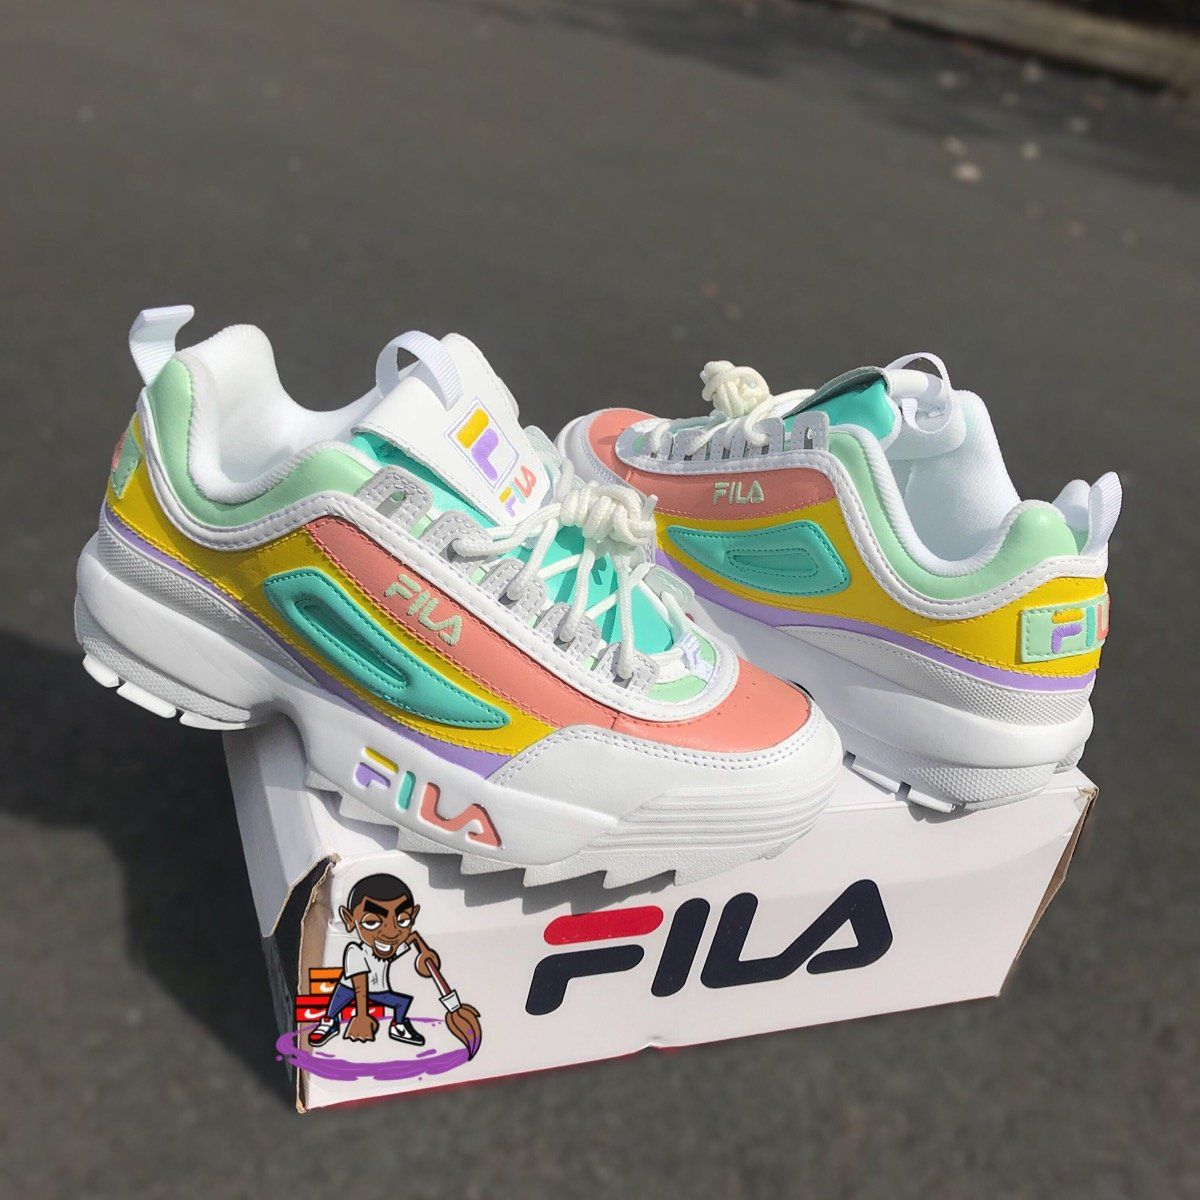 Image of Cotton candies Filas ? in 2019 | Sneakers, Sock